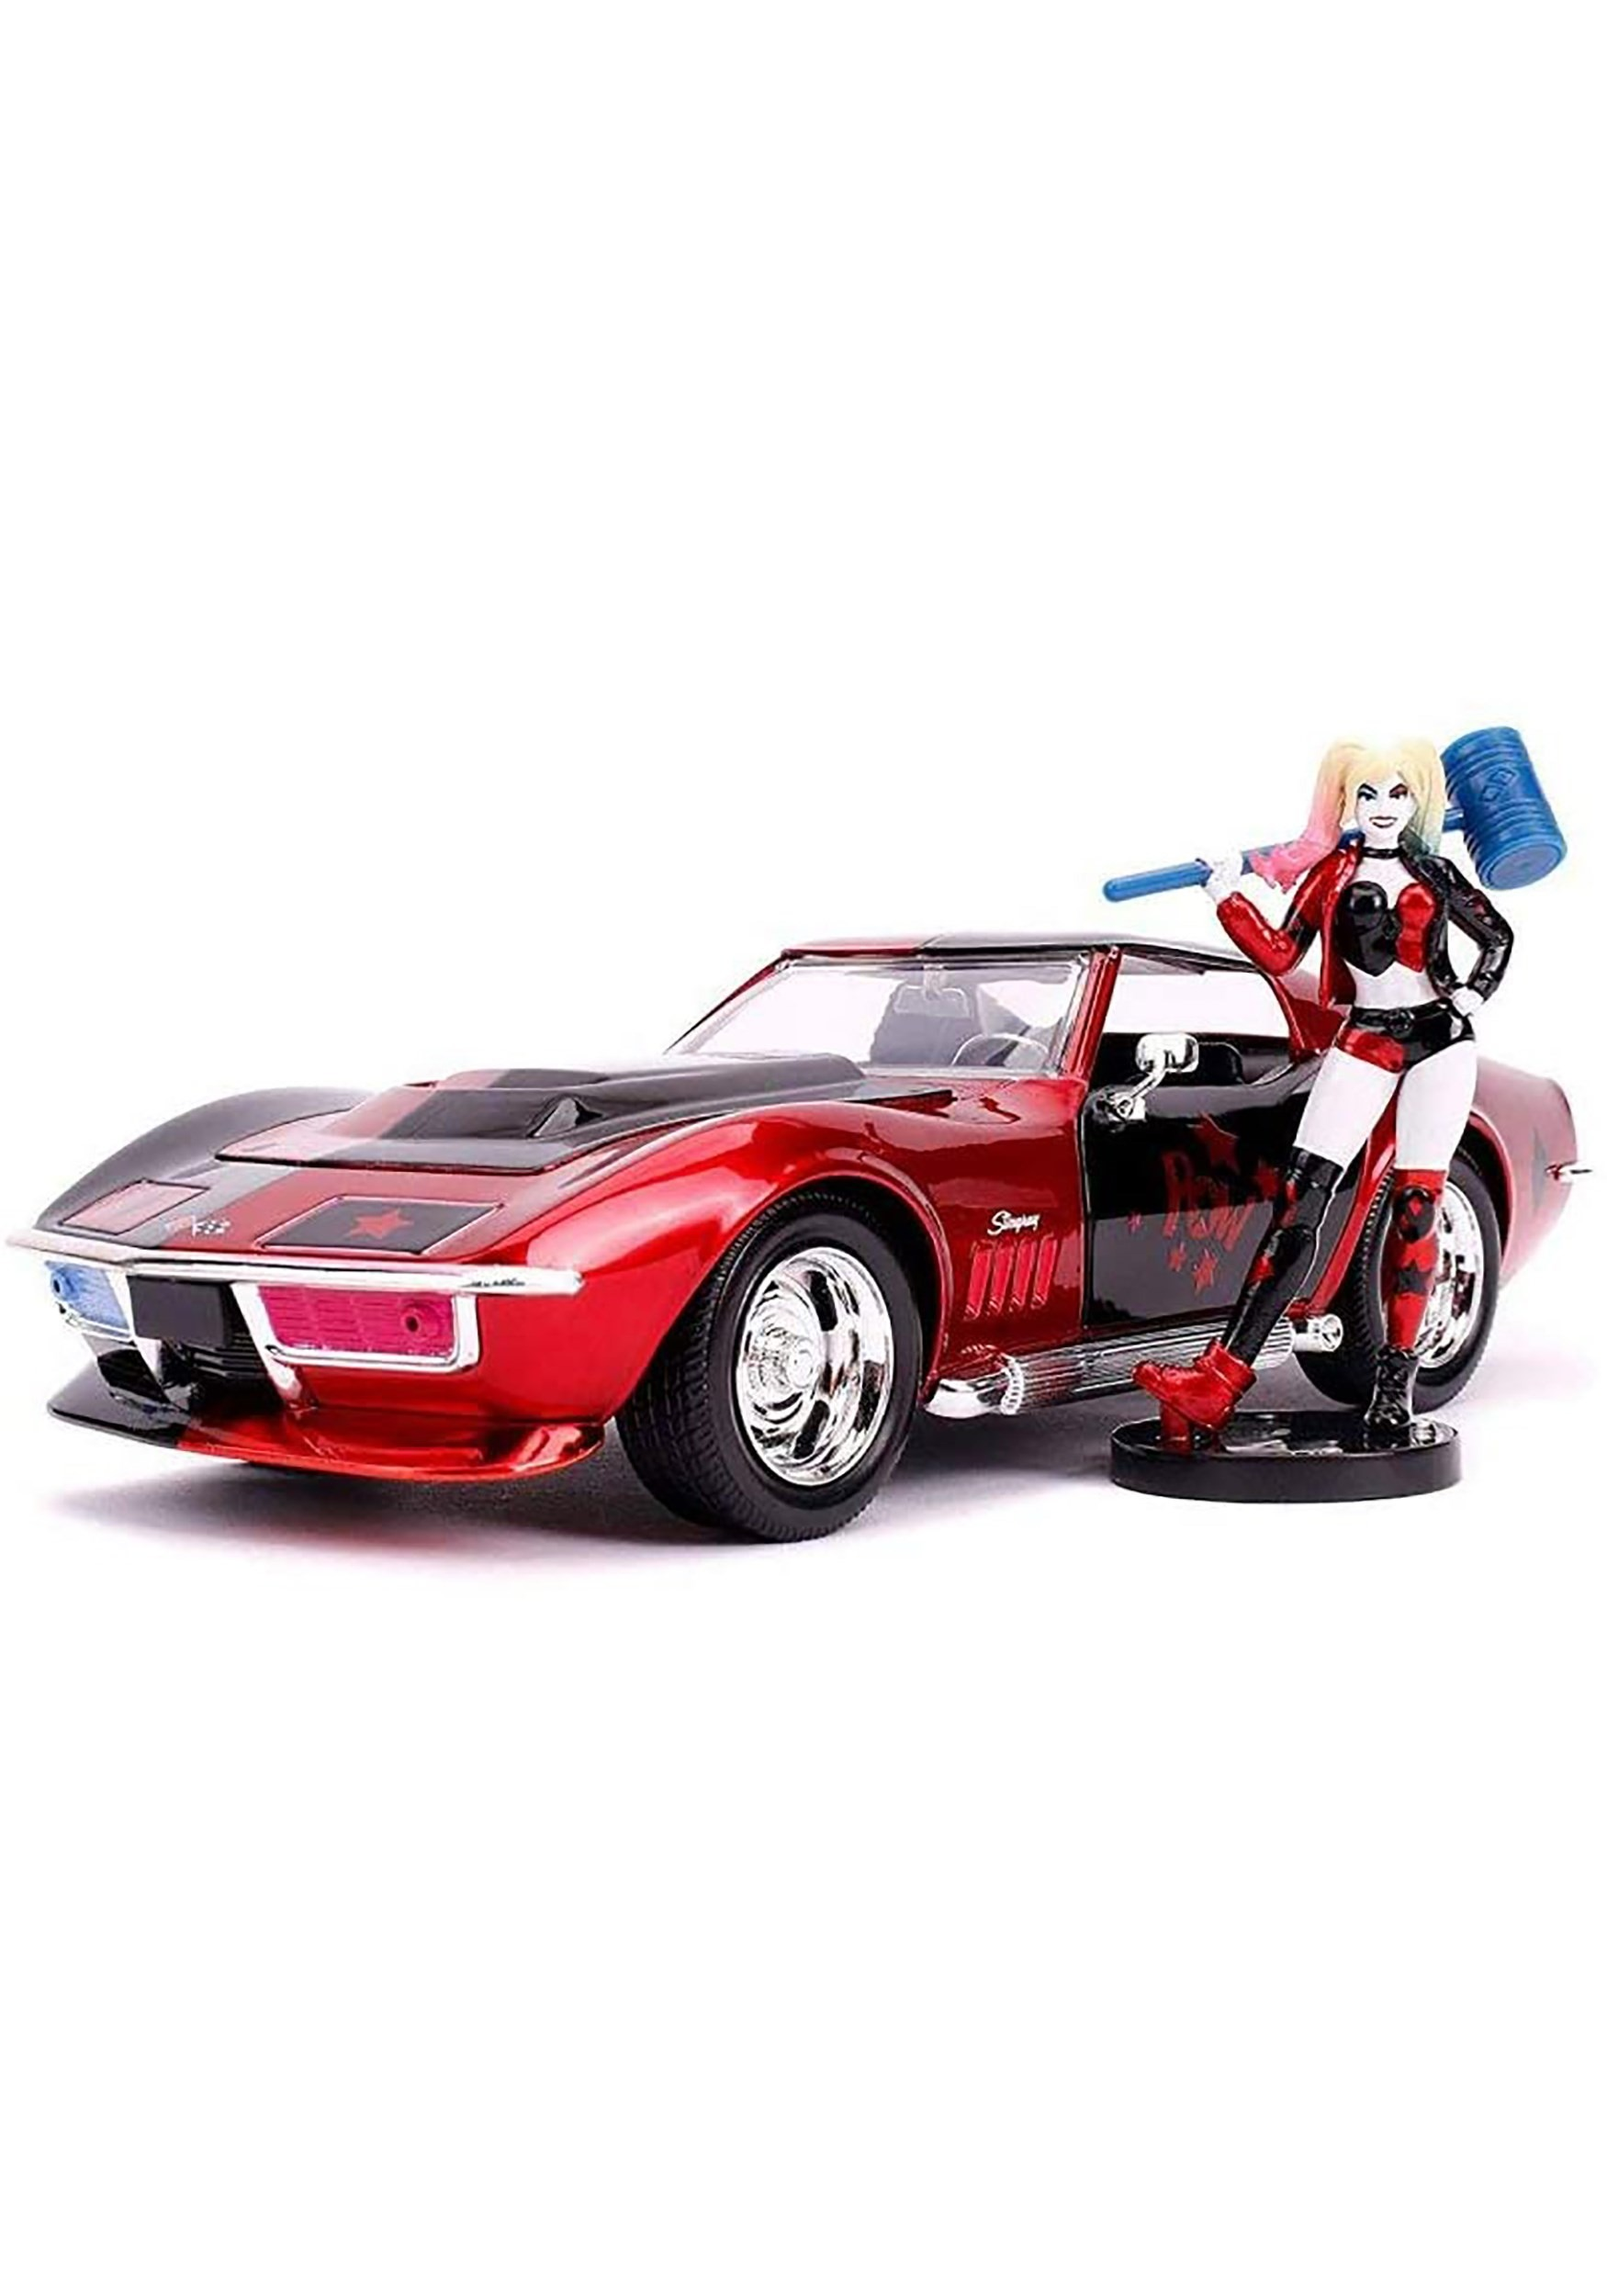 1969 Chevy Corvette Sting ray with Harley Quin 1:24